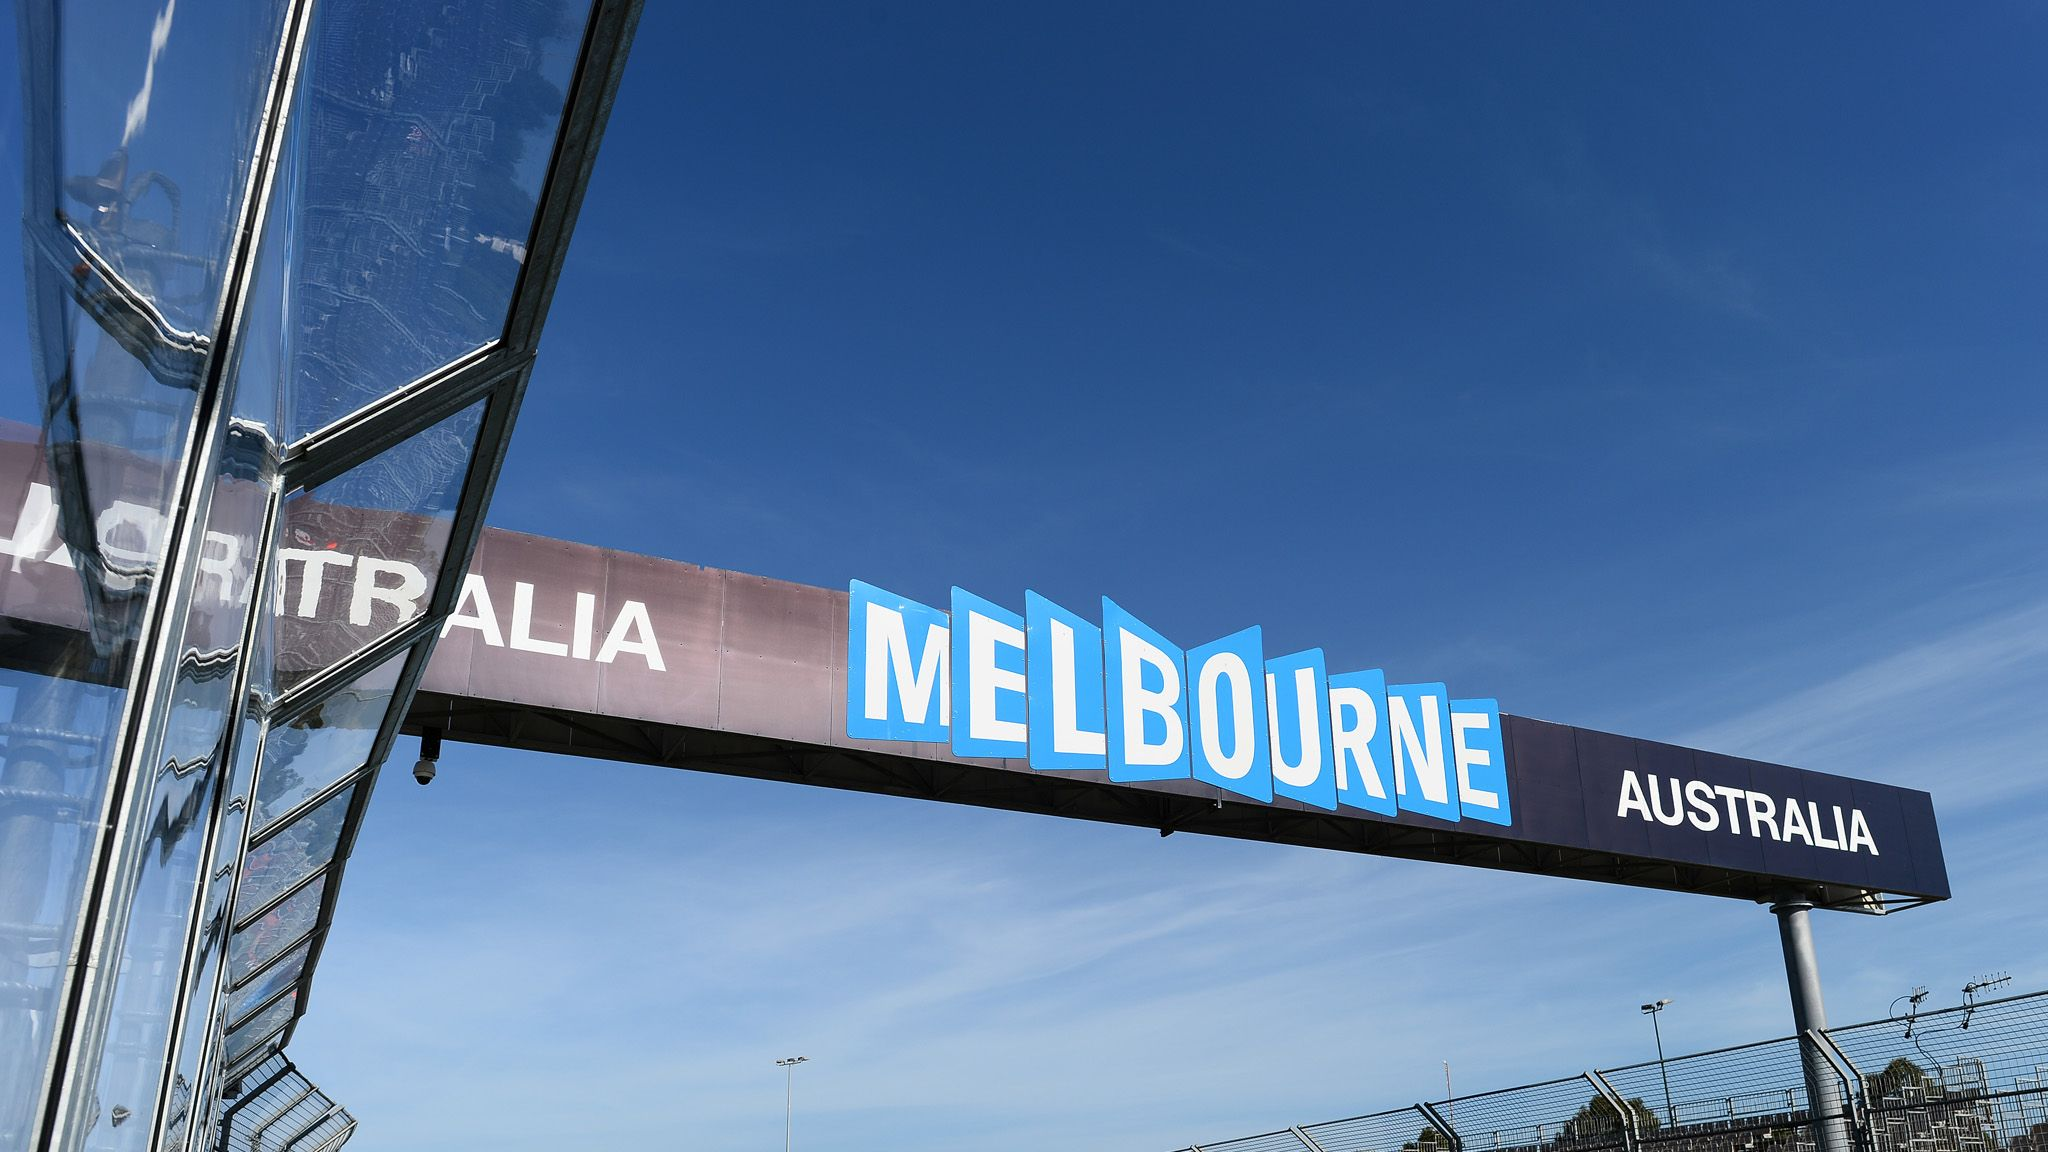 Australian GP to stay at Melbourne's Albert Park until the